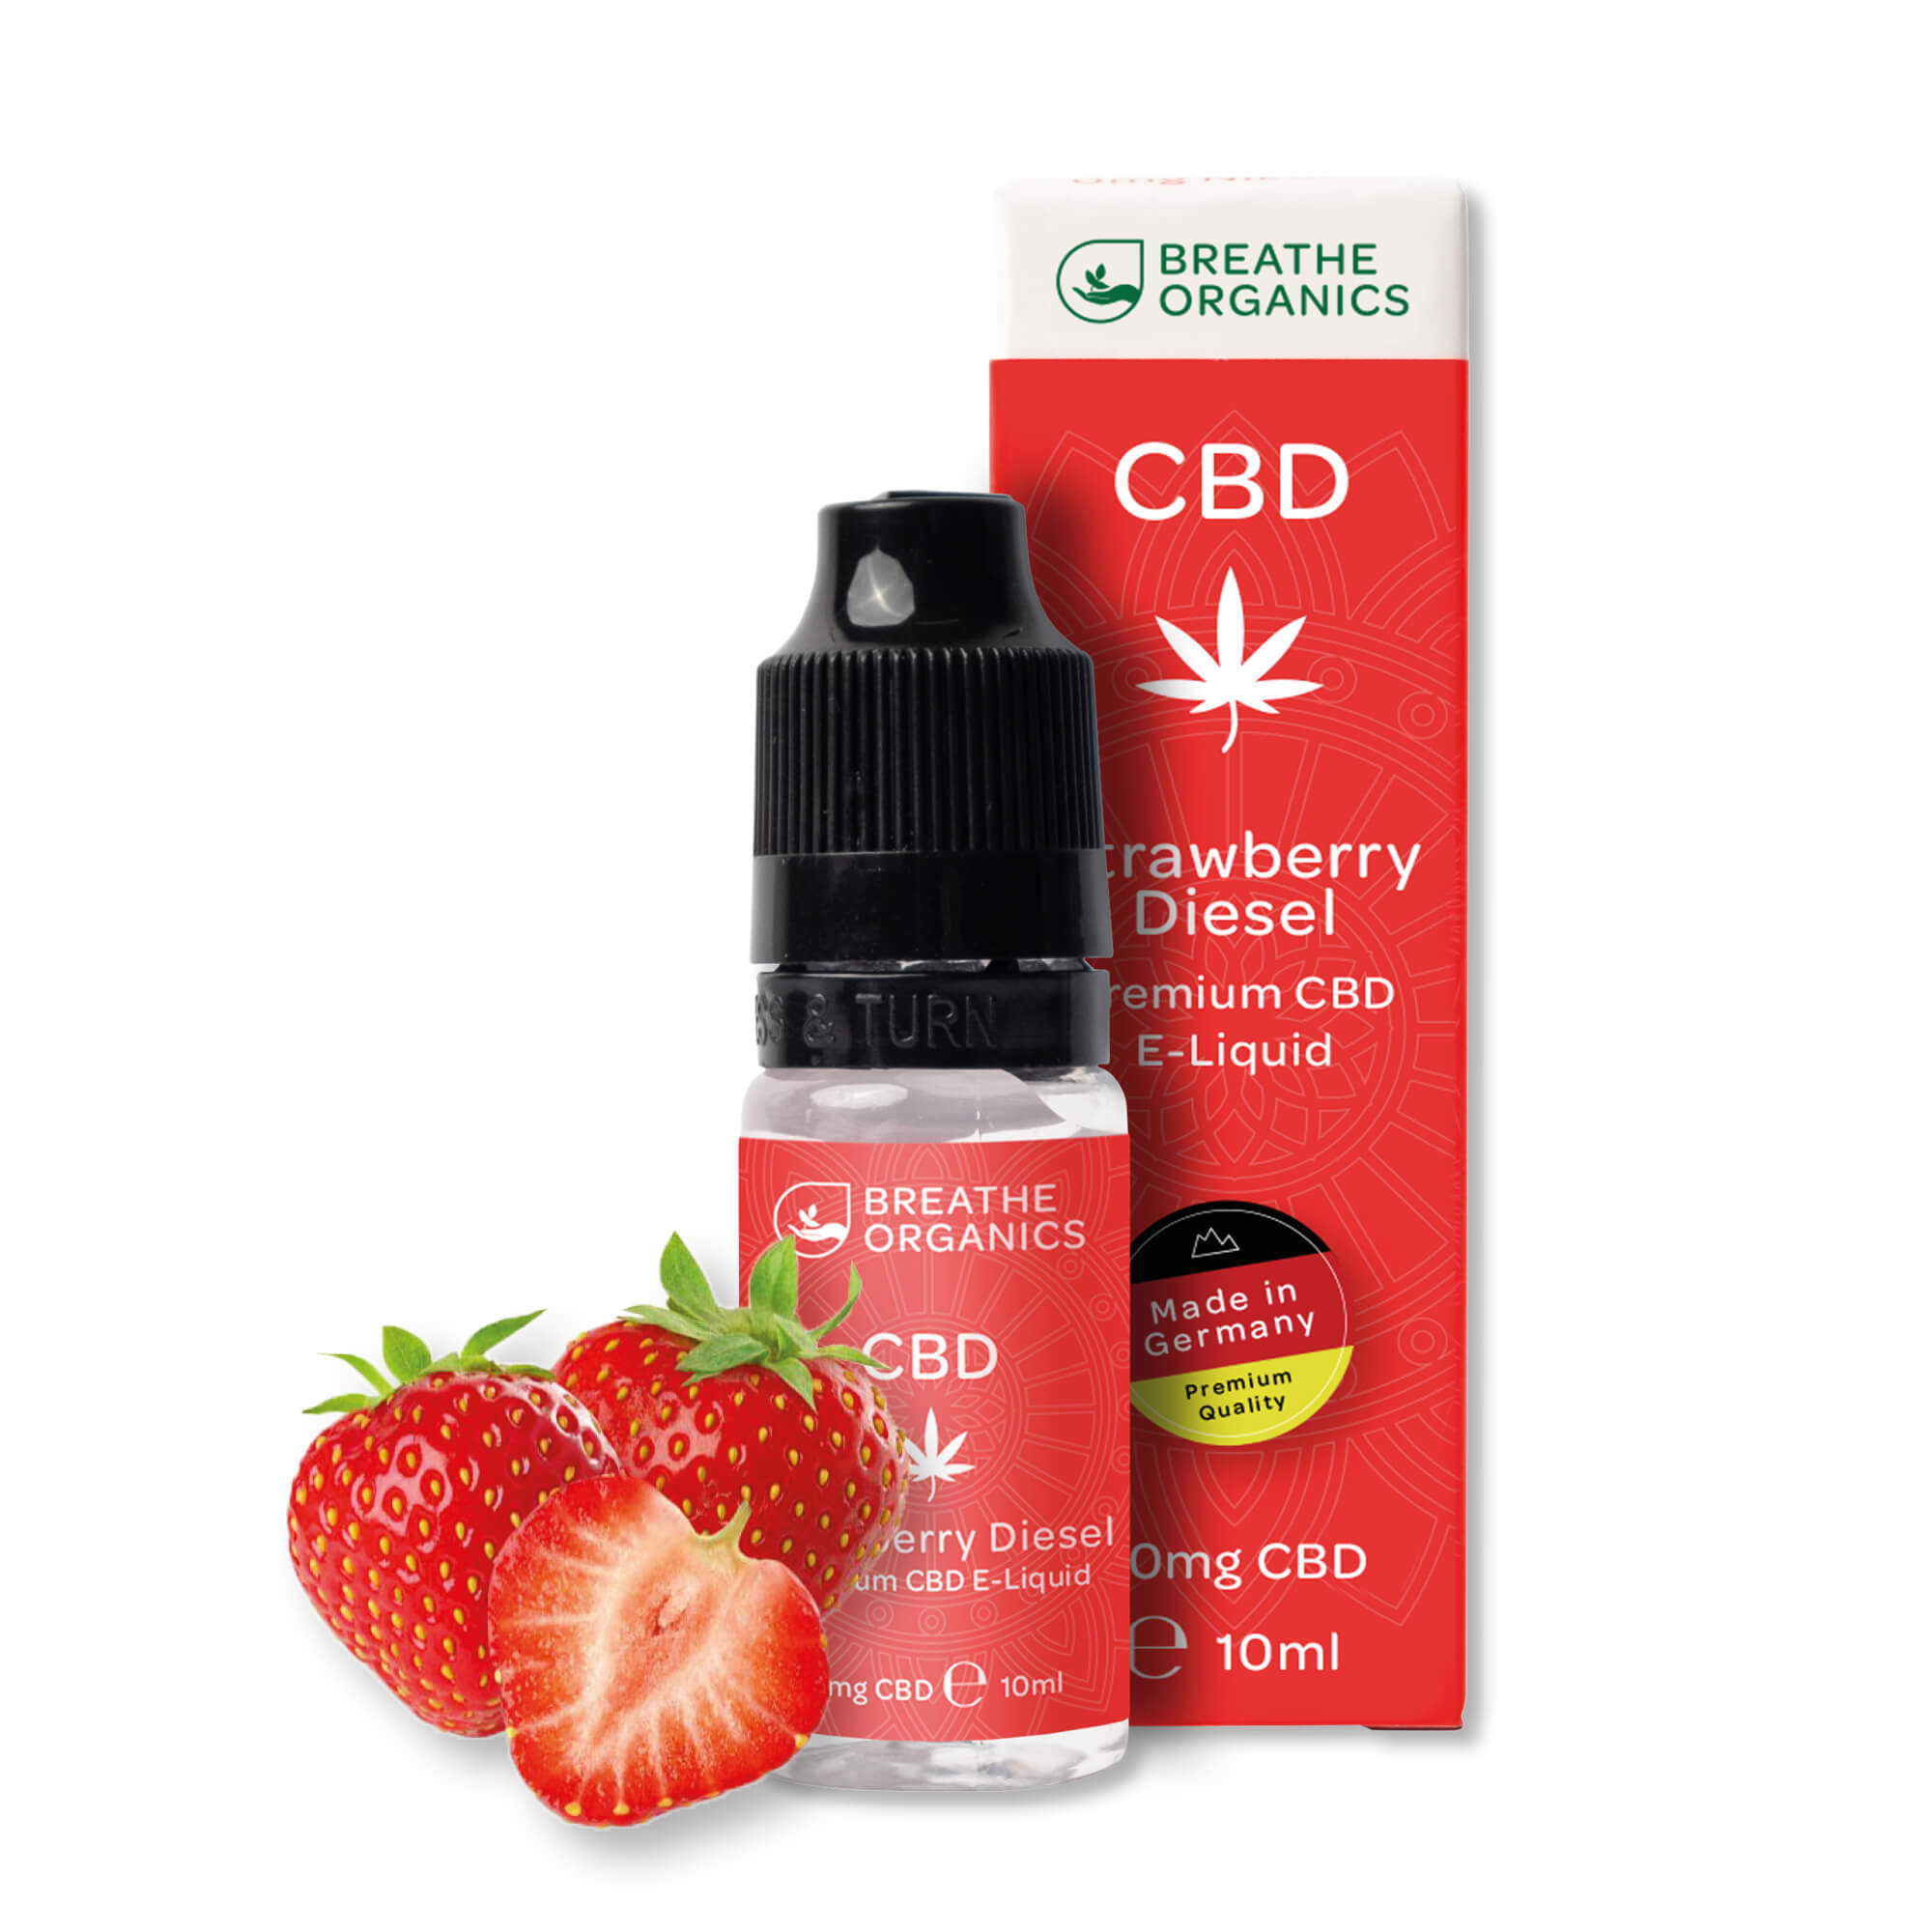 Breathe Organics - Premium CBD E-Liquid Strawberry Diesel 100mg